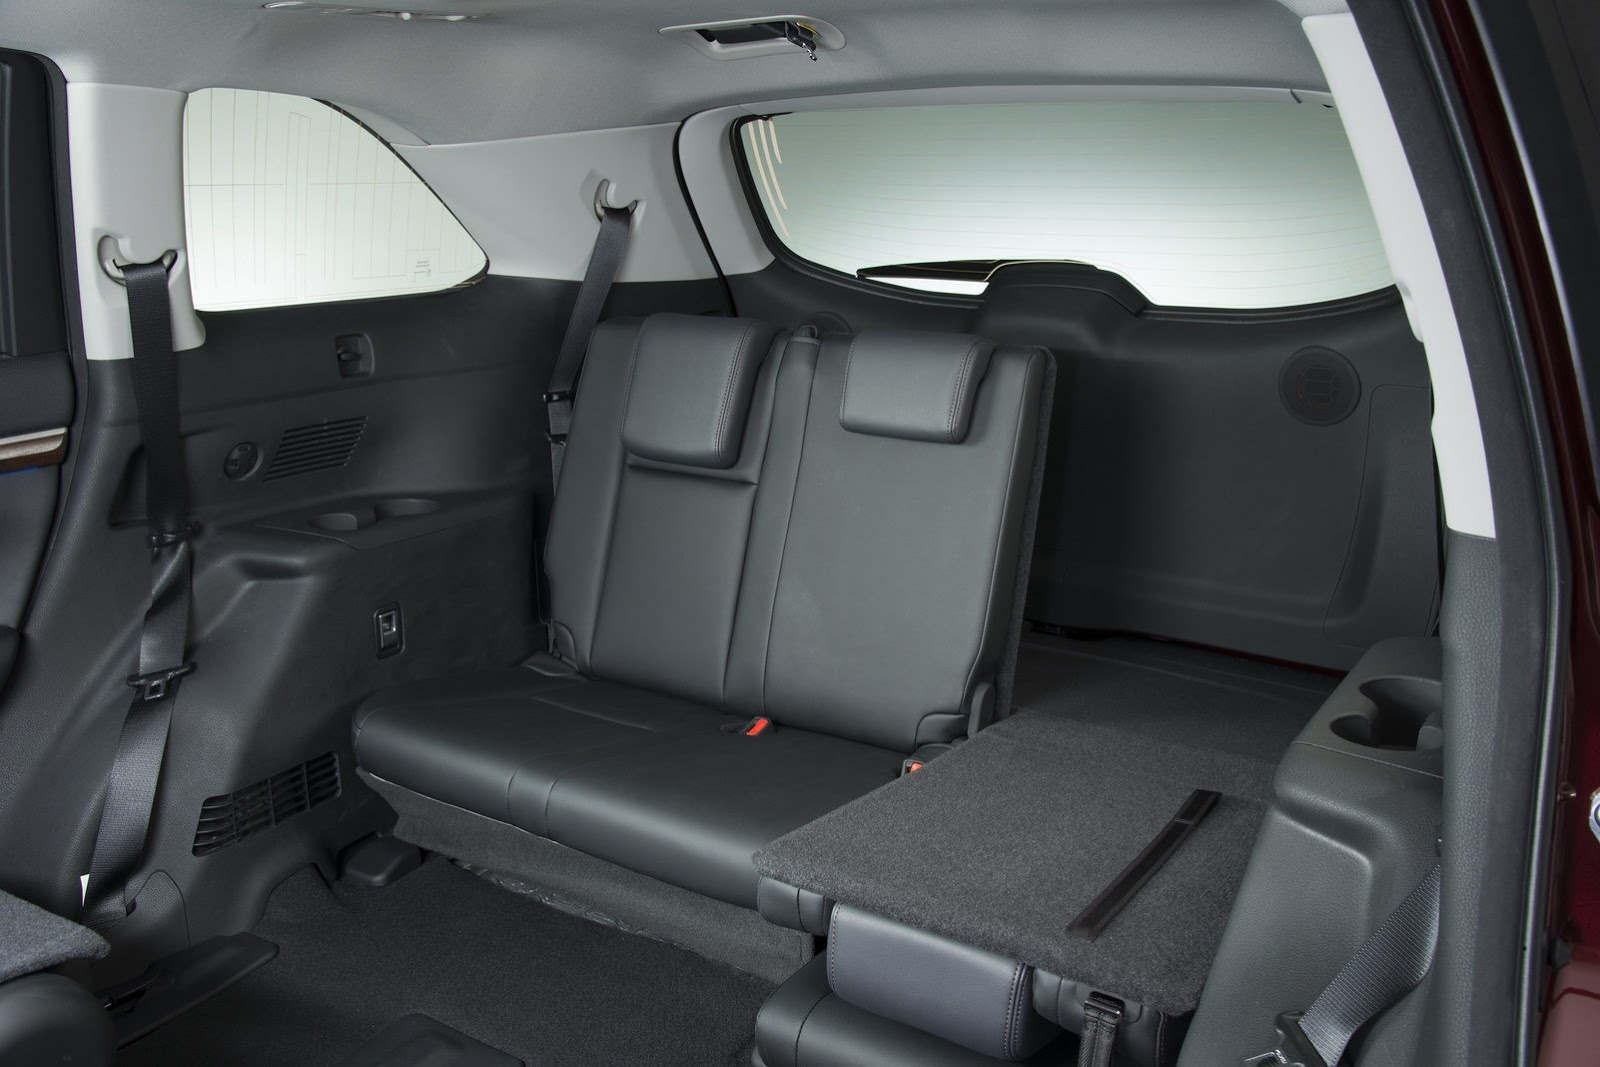 Maxresdefault also Toyota Yaris Hybrid together with Toyota Avensis Interior besides Meet The Toyota Highlander Photo Gallery likewise Prius Plug In Hybrid. on toyota prius inside